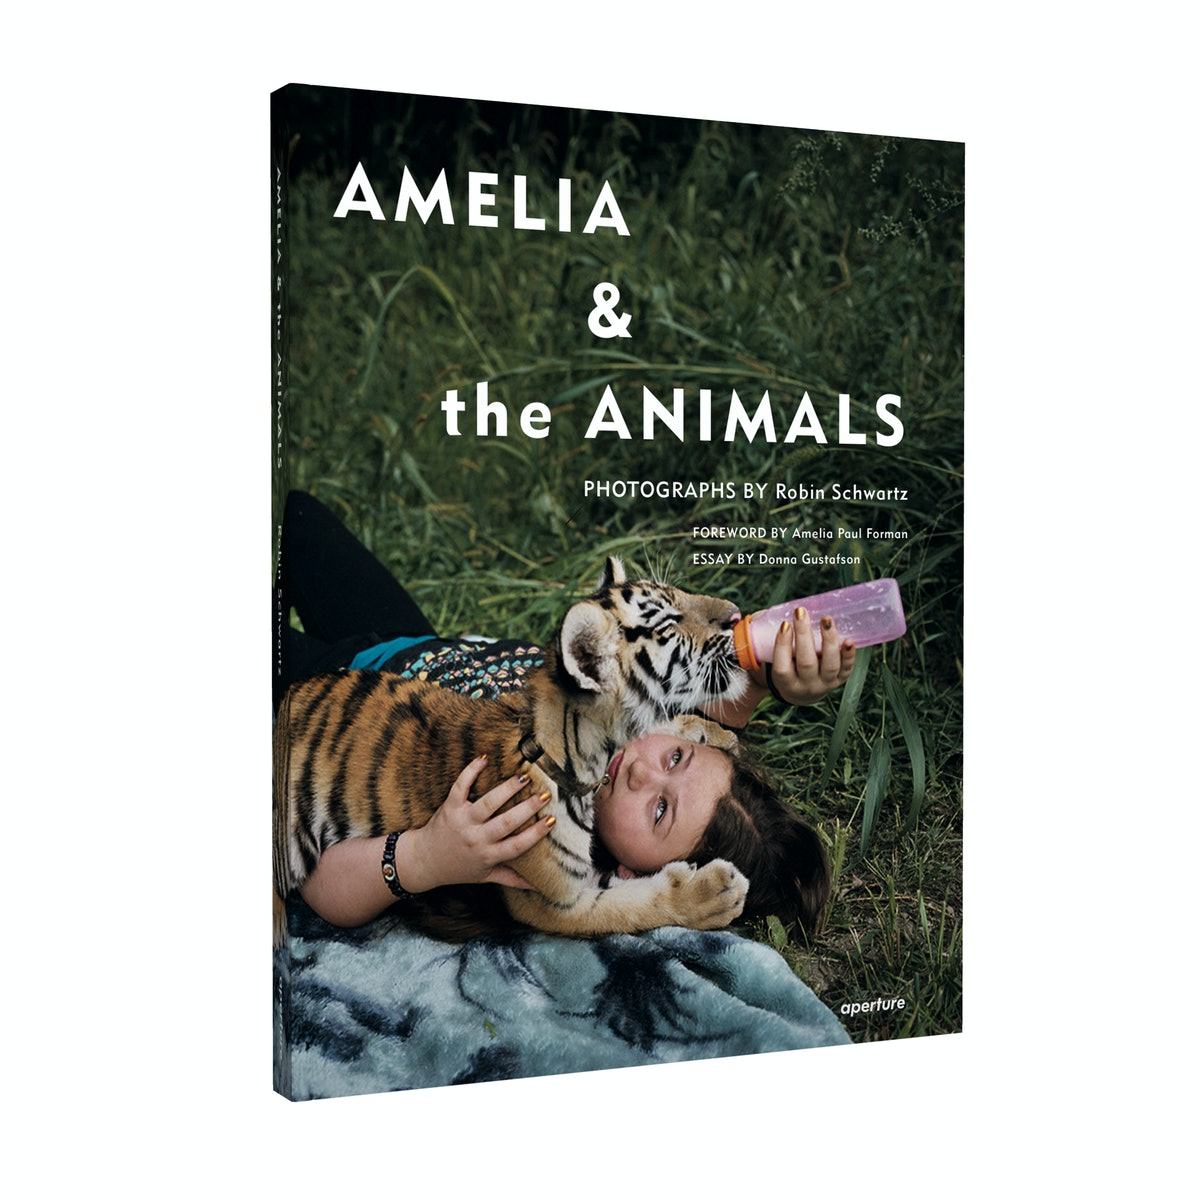 Amelia & the Animals, photographed by Robin Schwartz